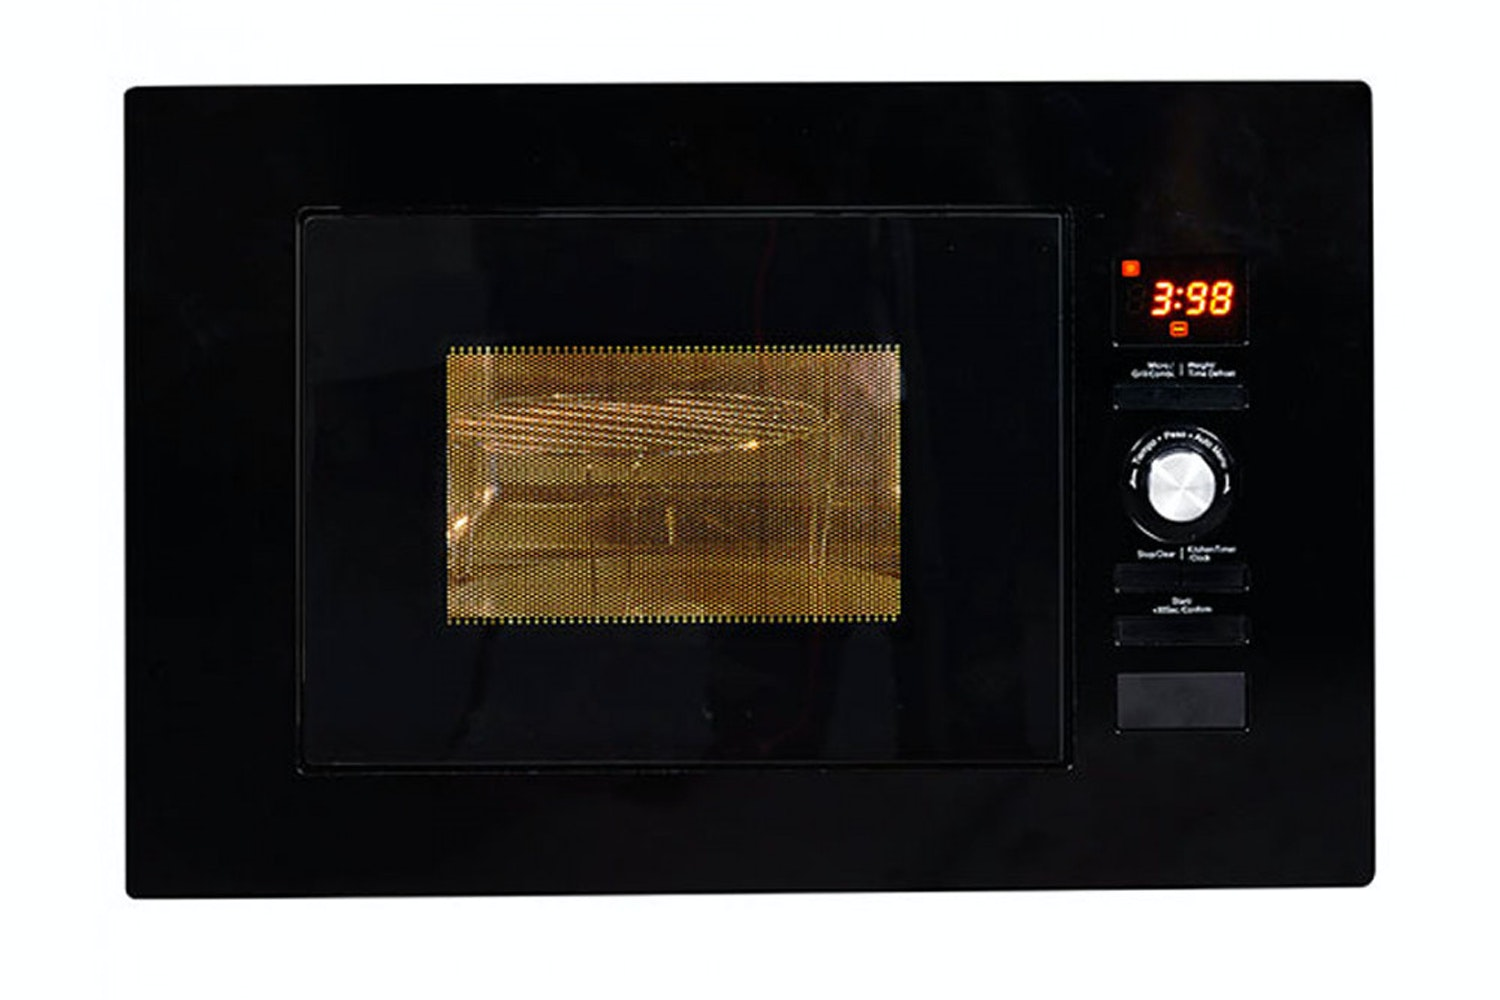 Nordmende 20L 800W Built In Combi Microwave | Black